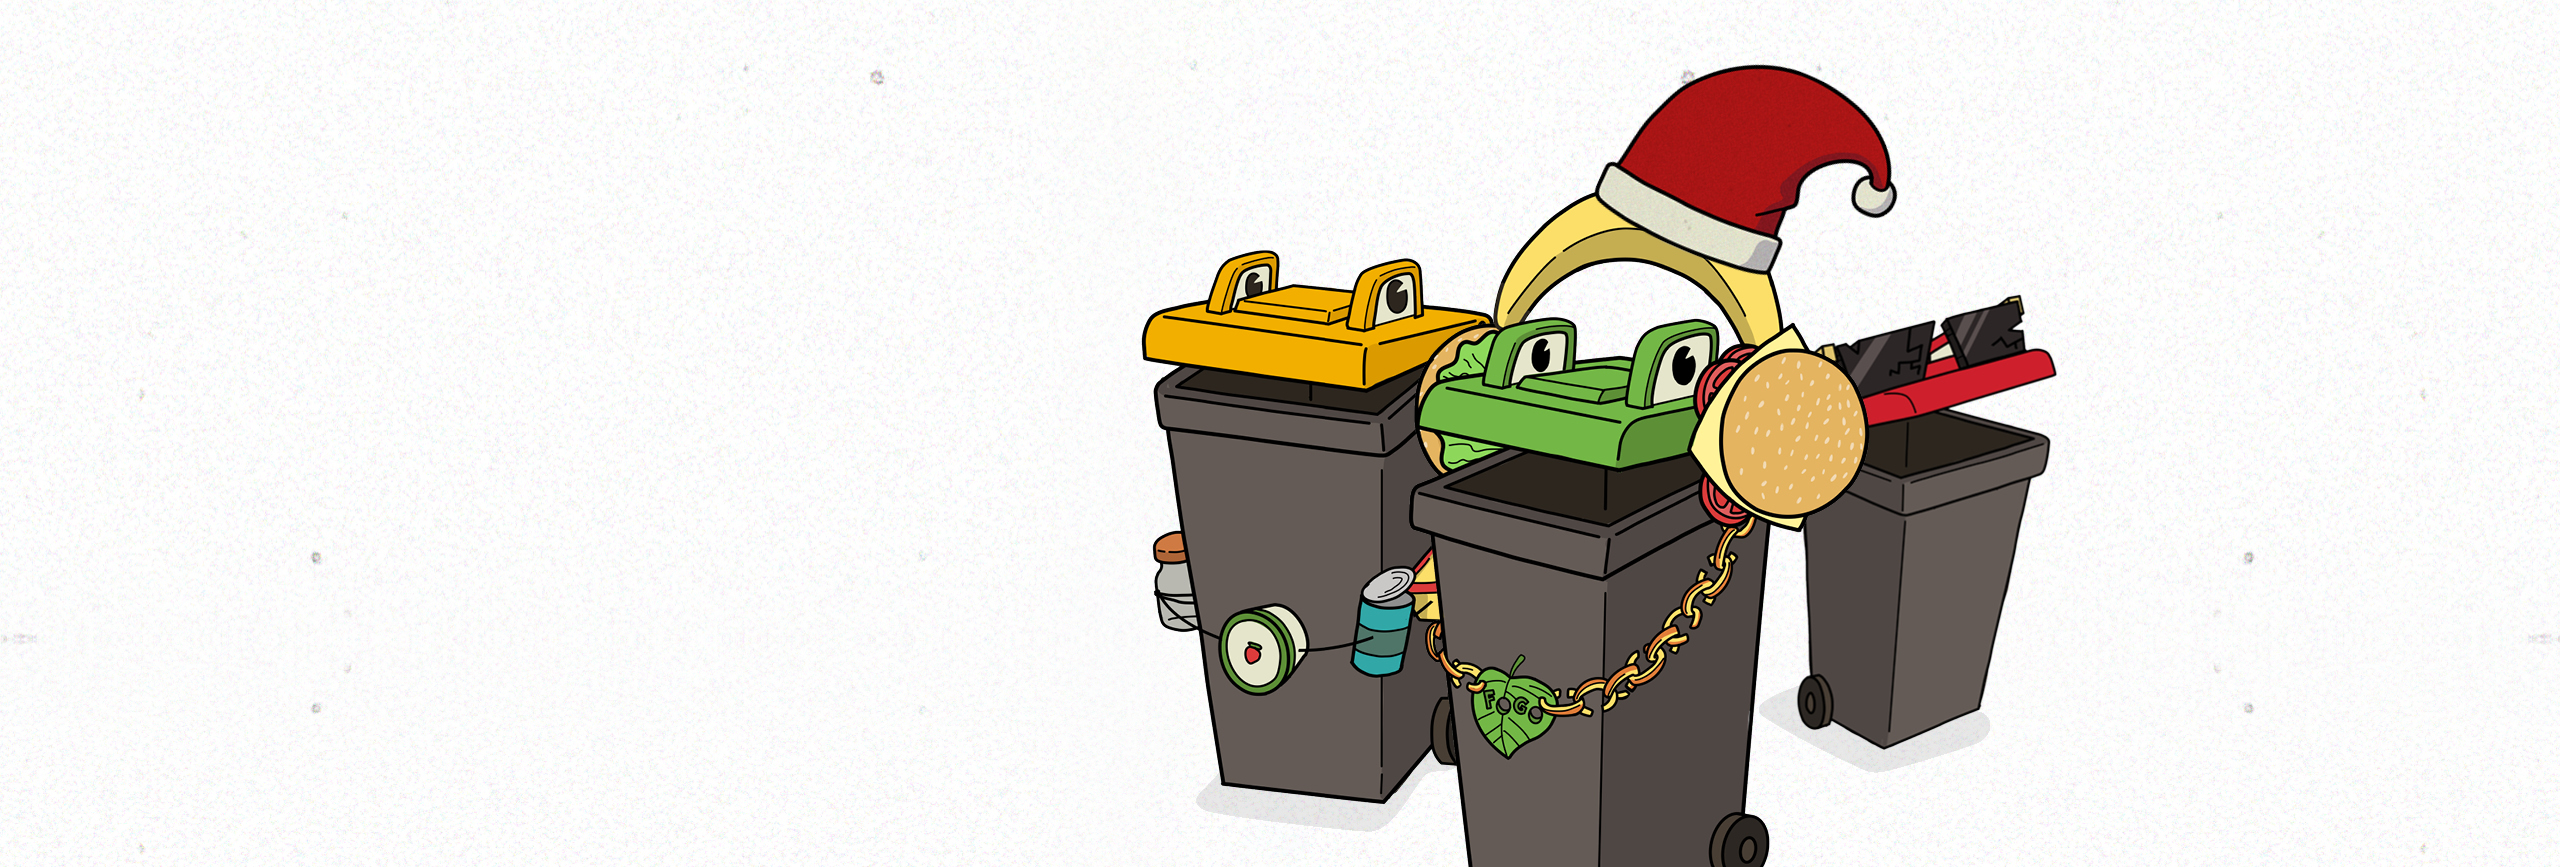 3-bins, green red and yellow